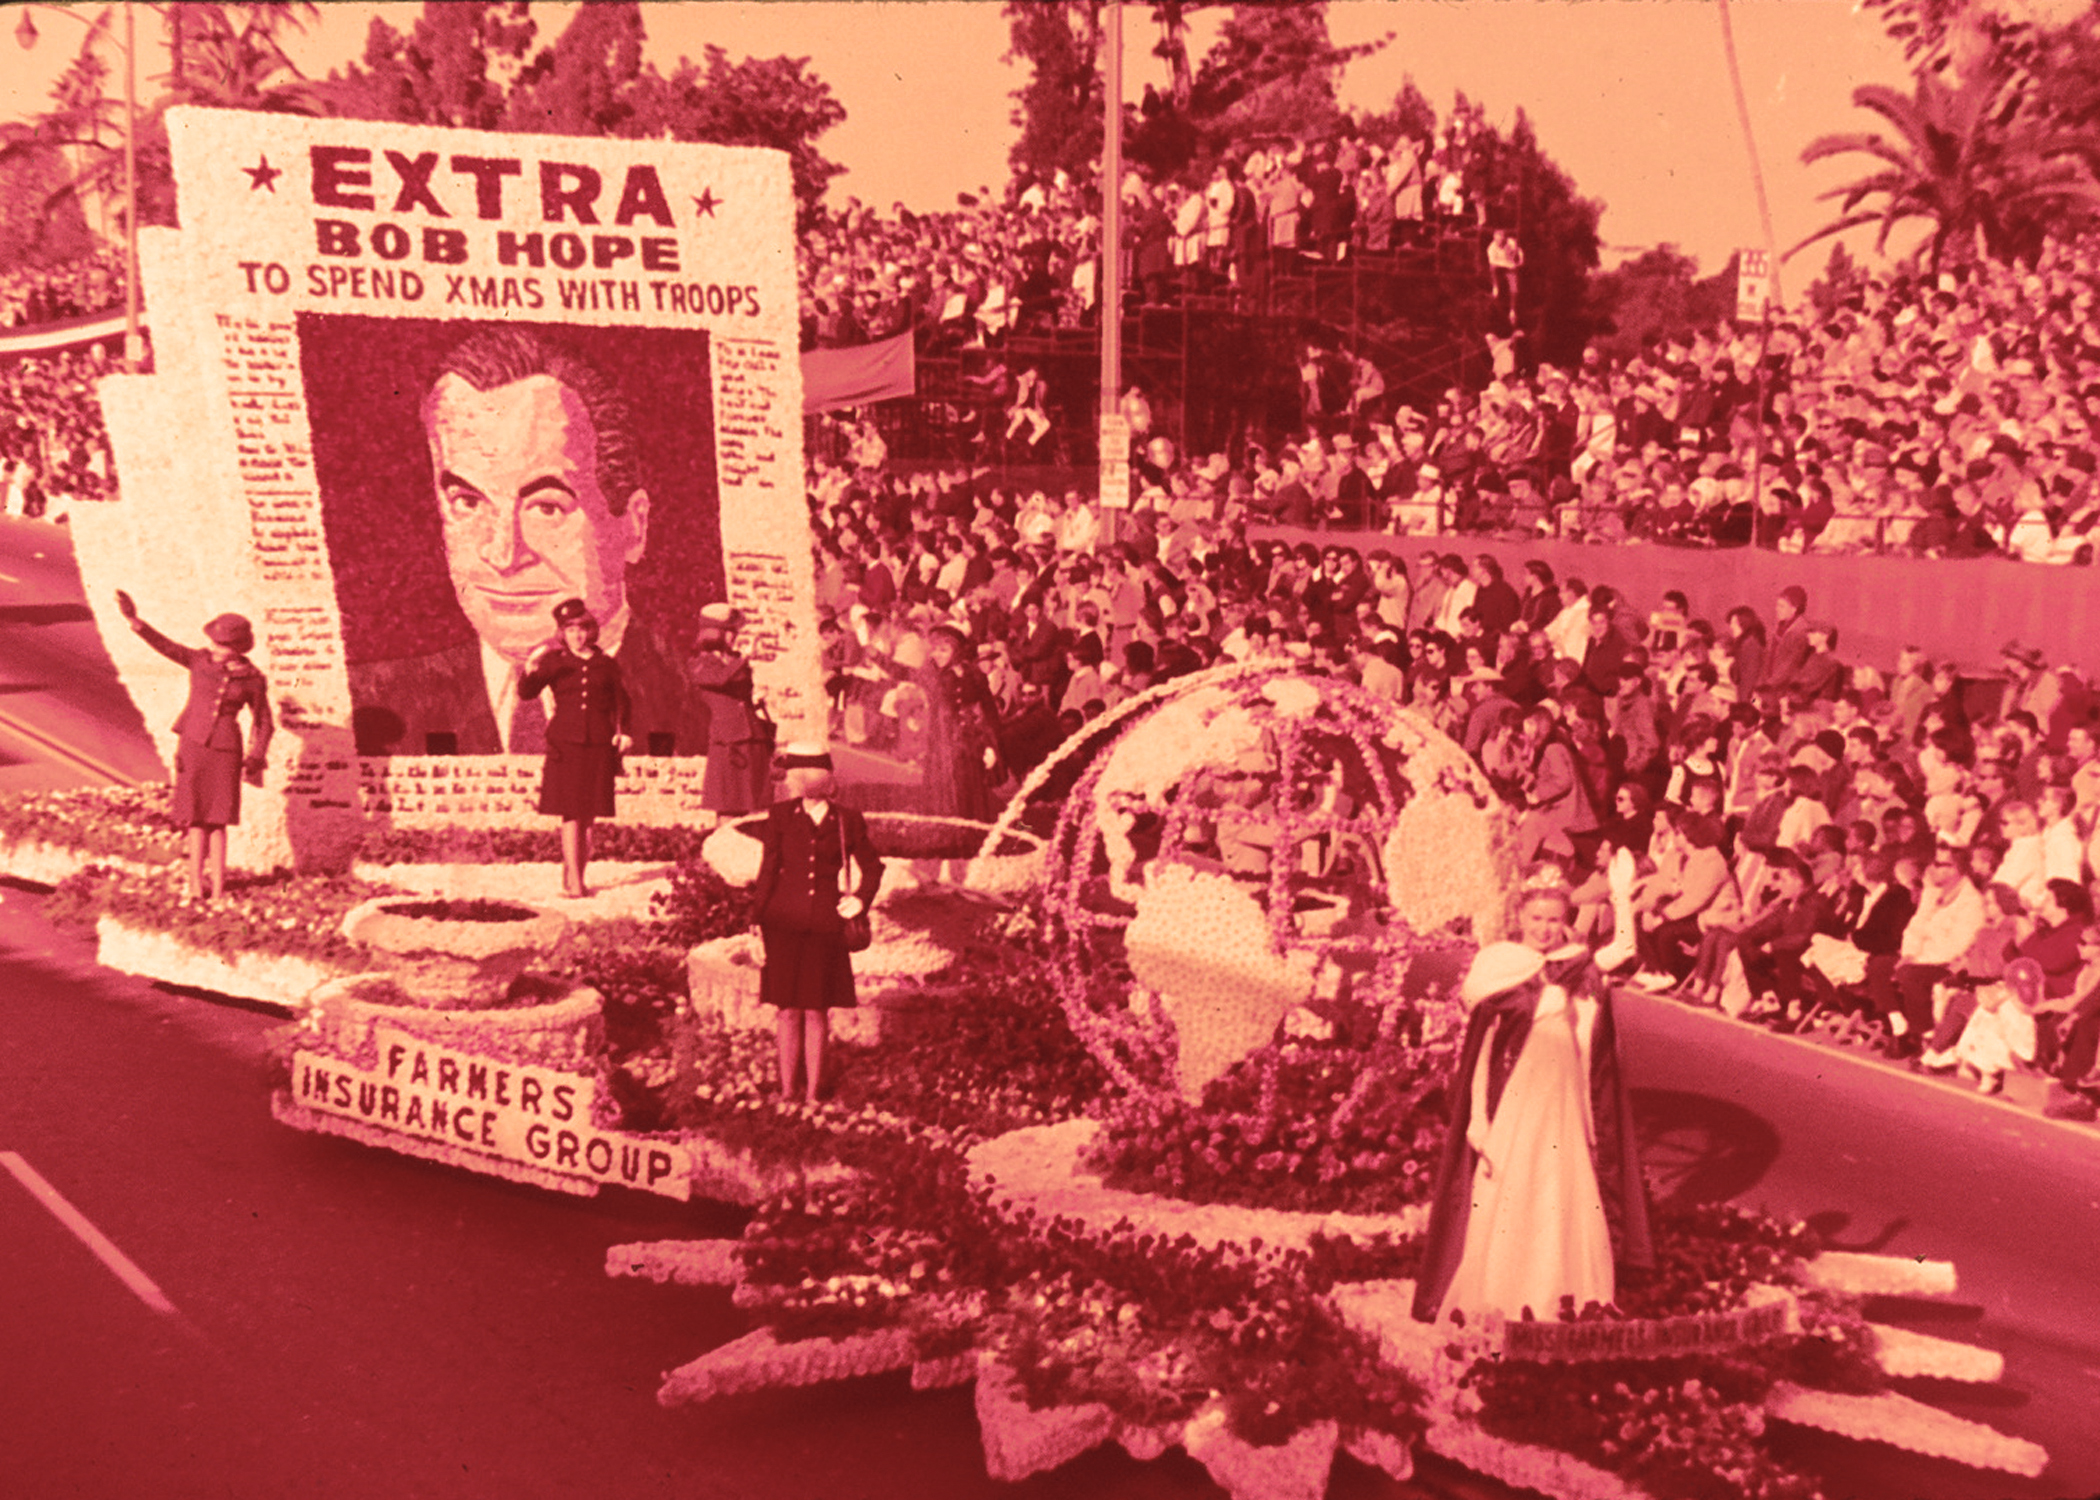 The Farmers Insurance Group float featuring Bob Hope in the 1965 Tournament of Roses Parade.